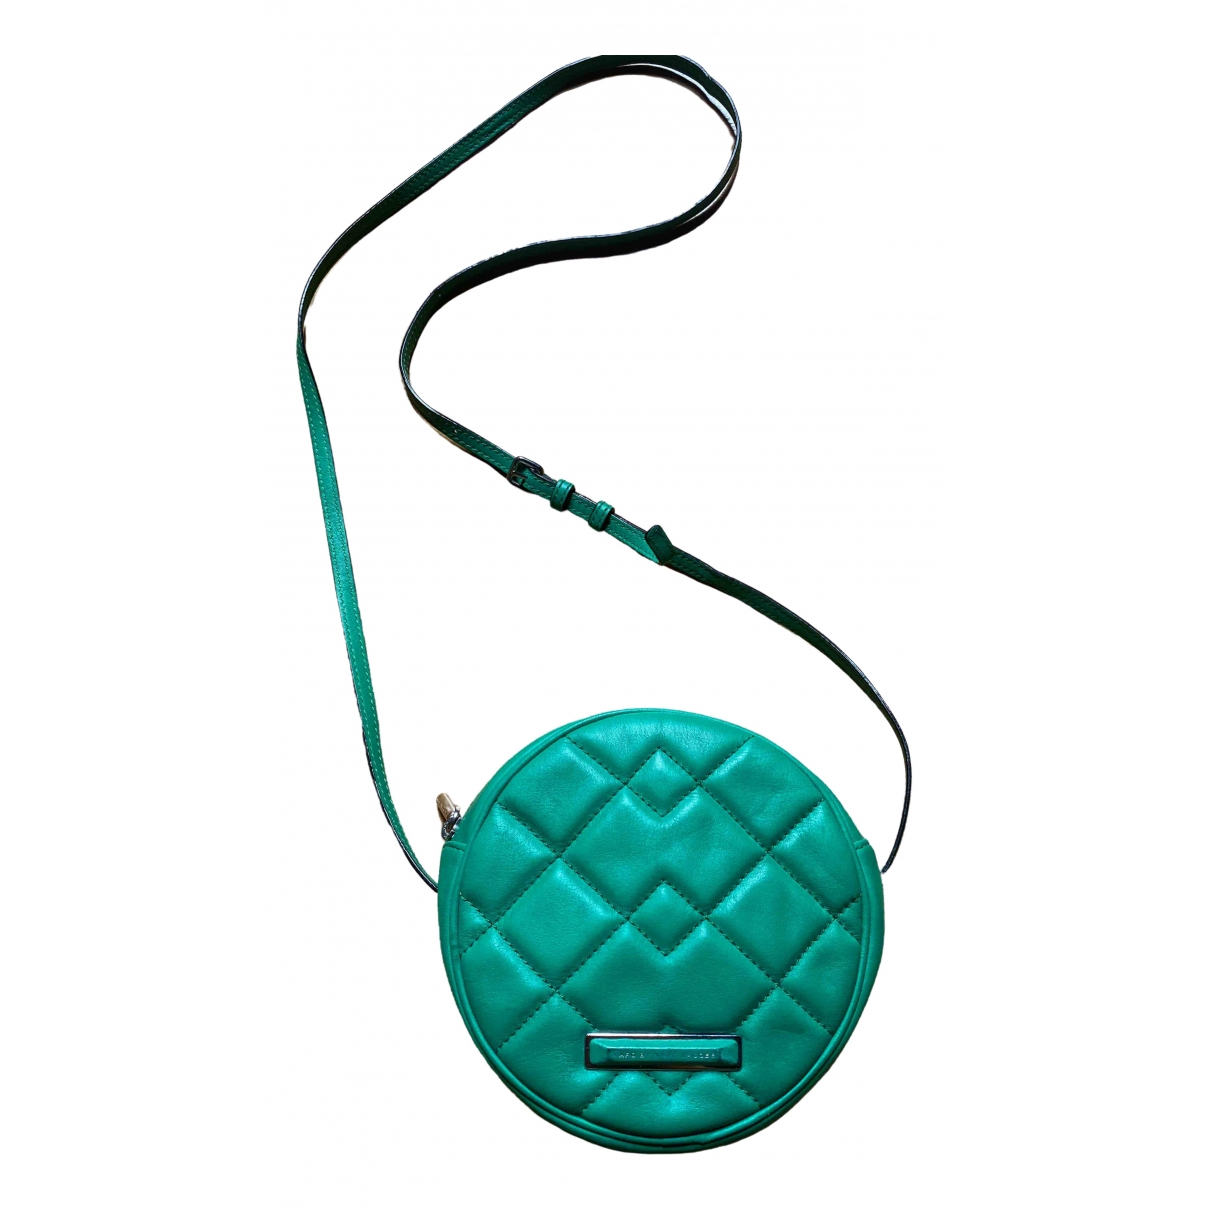 Marc By Marc Jacobs N Green Leather Clutch bag for Women N